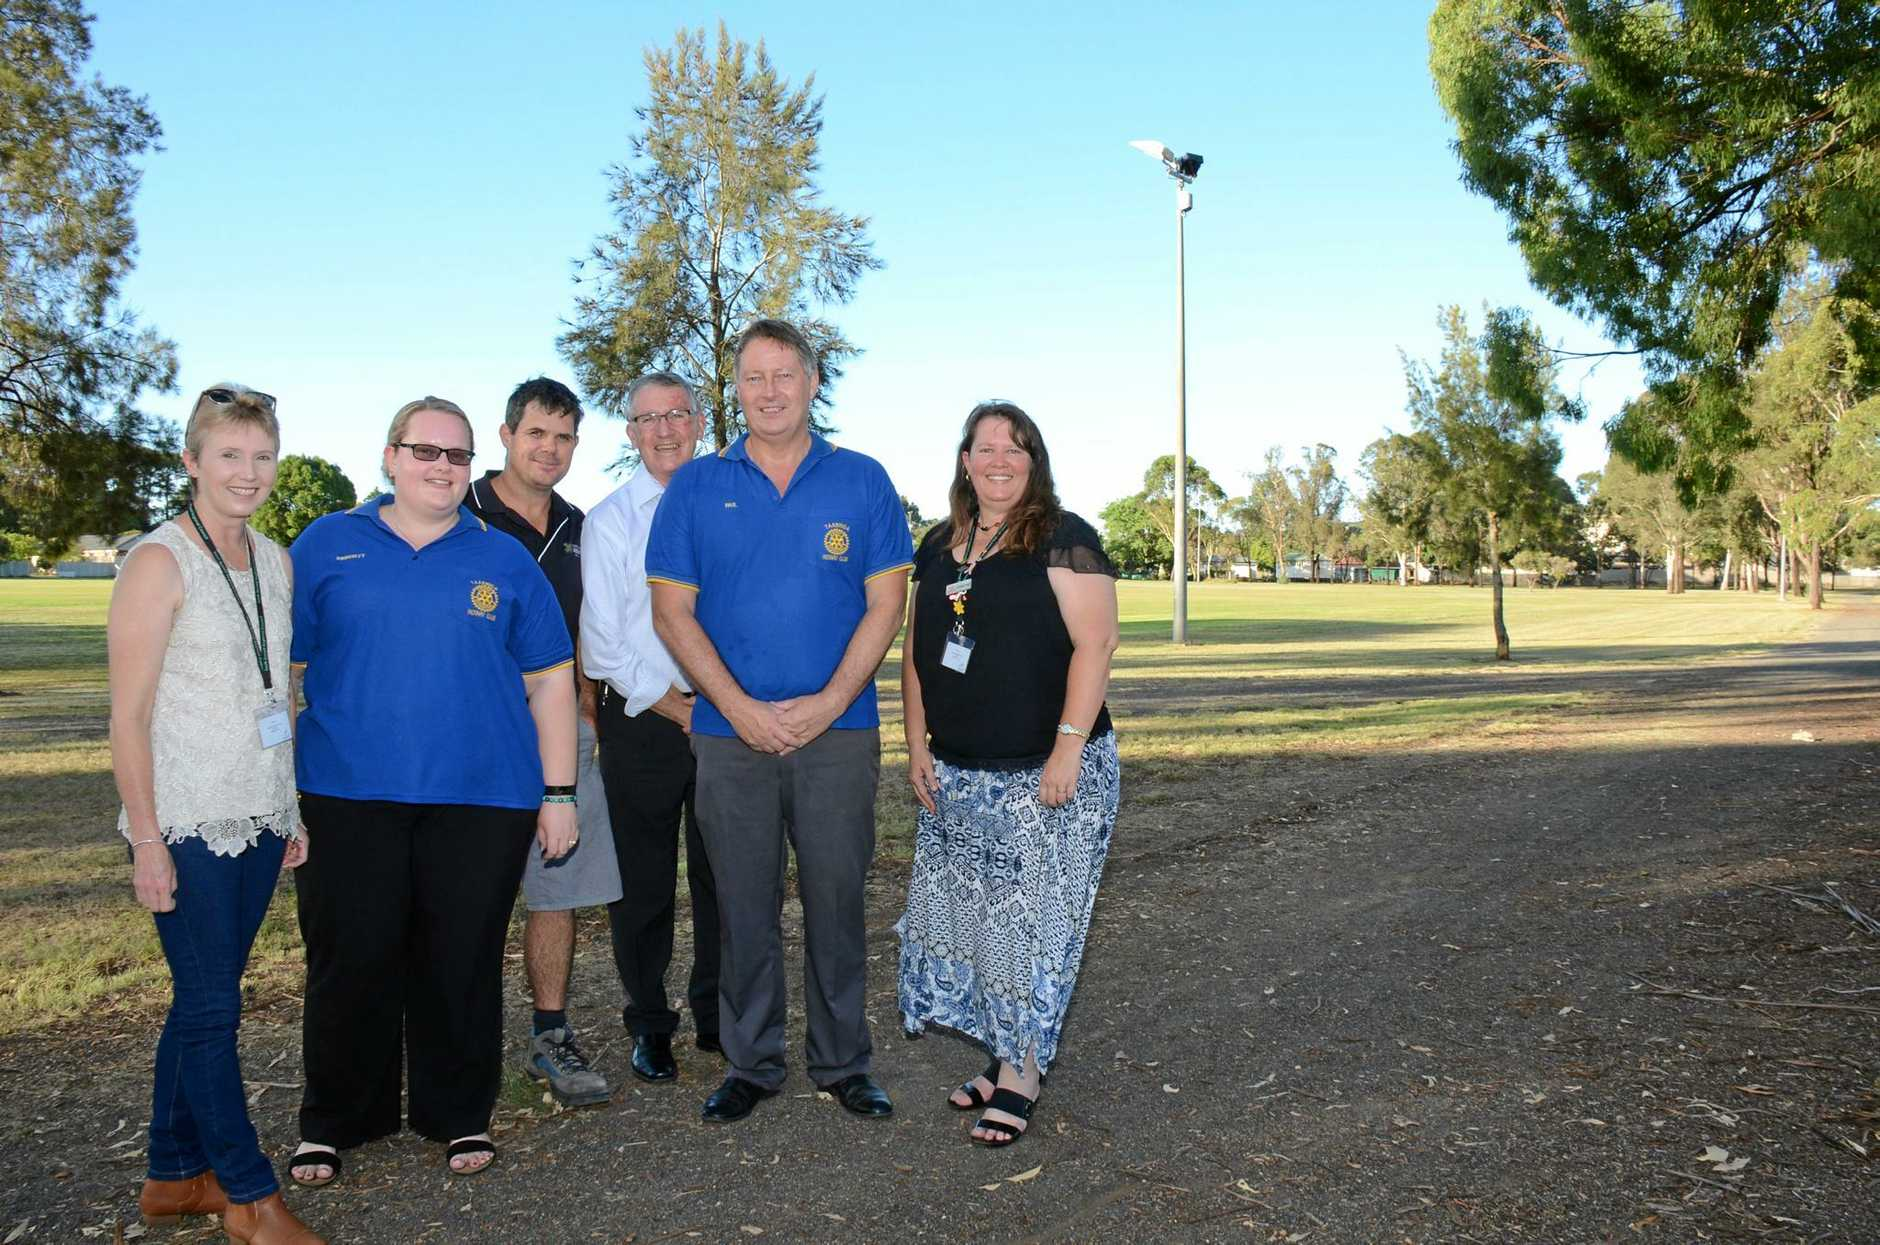 Cr Ros Frohloff, Kimberley McCullagh, Darrin Kefford, Mayor Keith Campbell, Paul Laurentiussen and Cr Danita Potter at the Kingaroy Town Common.